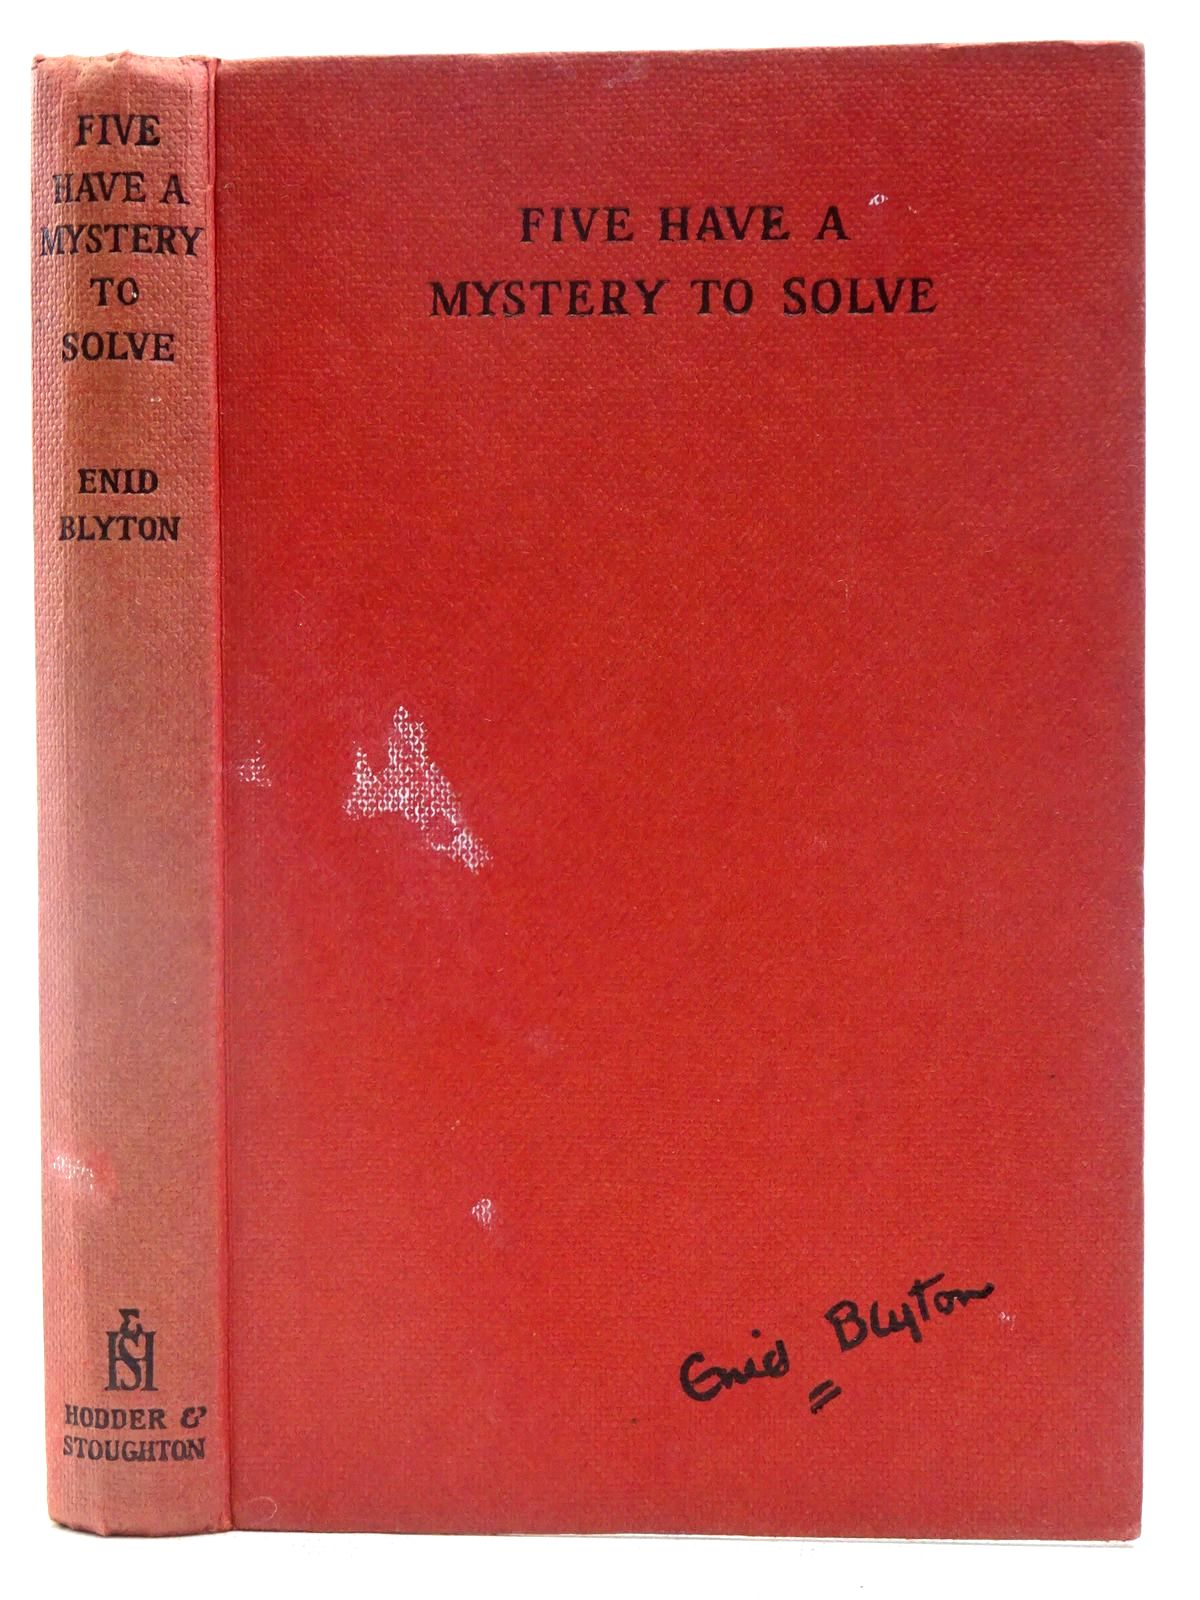 Photo of FIVE HAVE A MYSTERY TO SOLVE written by Blyton, Enid illustrated by Soper, Eileen published by Hodder & Stoughton (STOCK CODE: 2128178)  for sale by Stella & Rose's Books